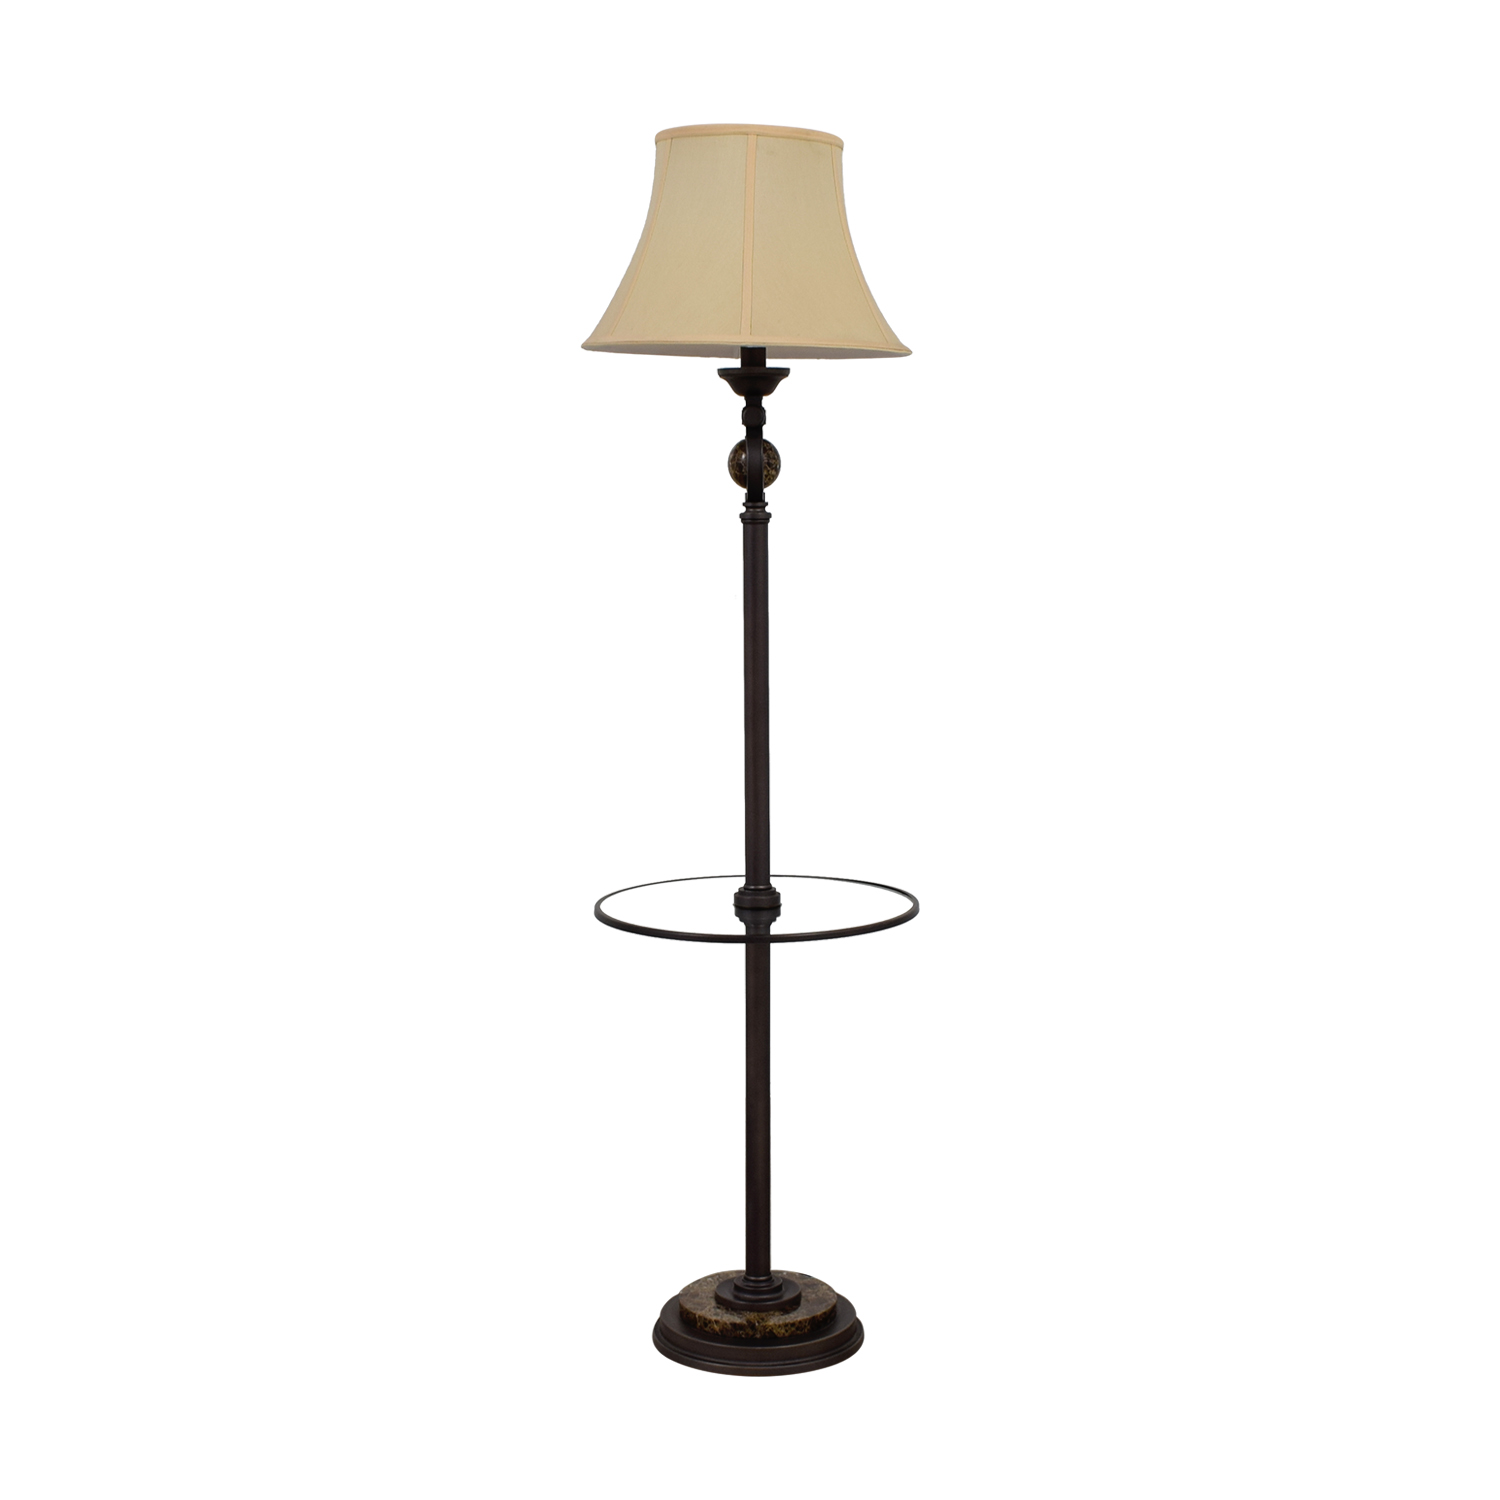 Crate & Barrel Floor Lamp with Glass Center Ledge / Lamps